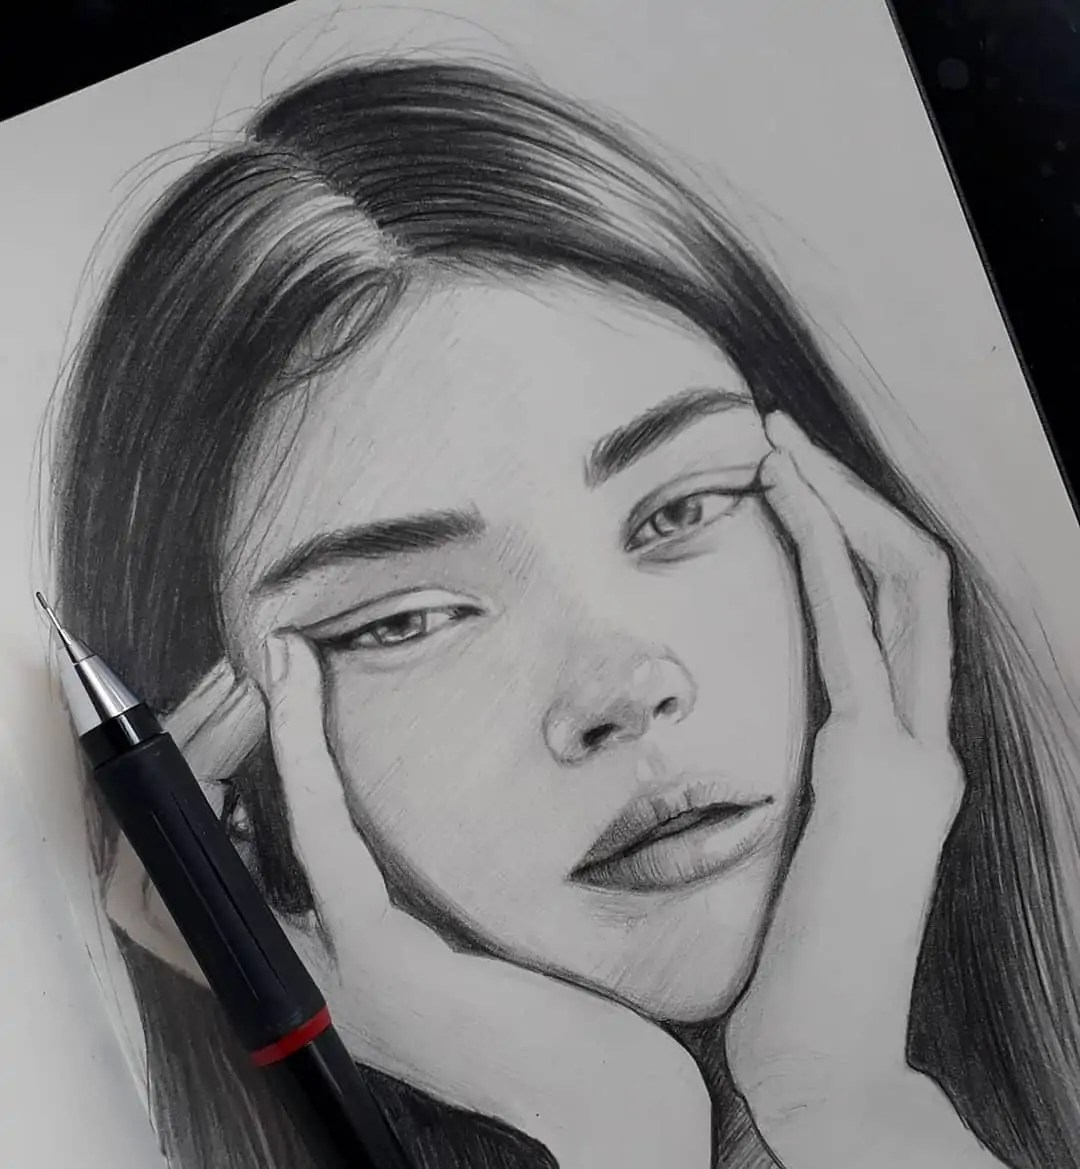 100+ Stunning Realistic Portrait Drawings 245